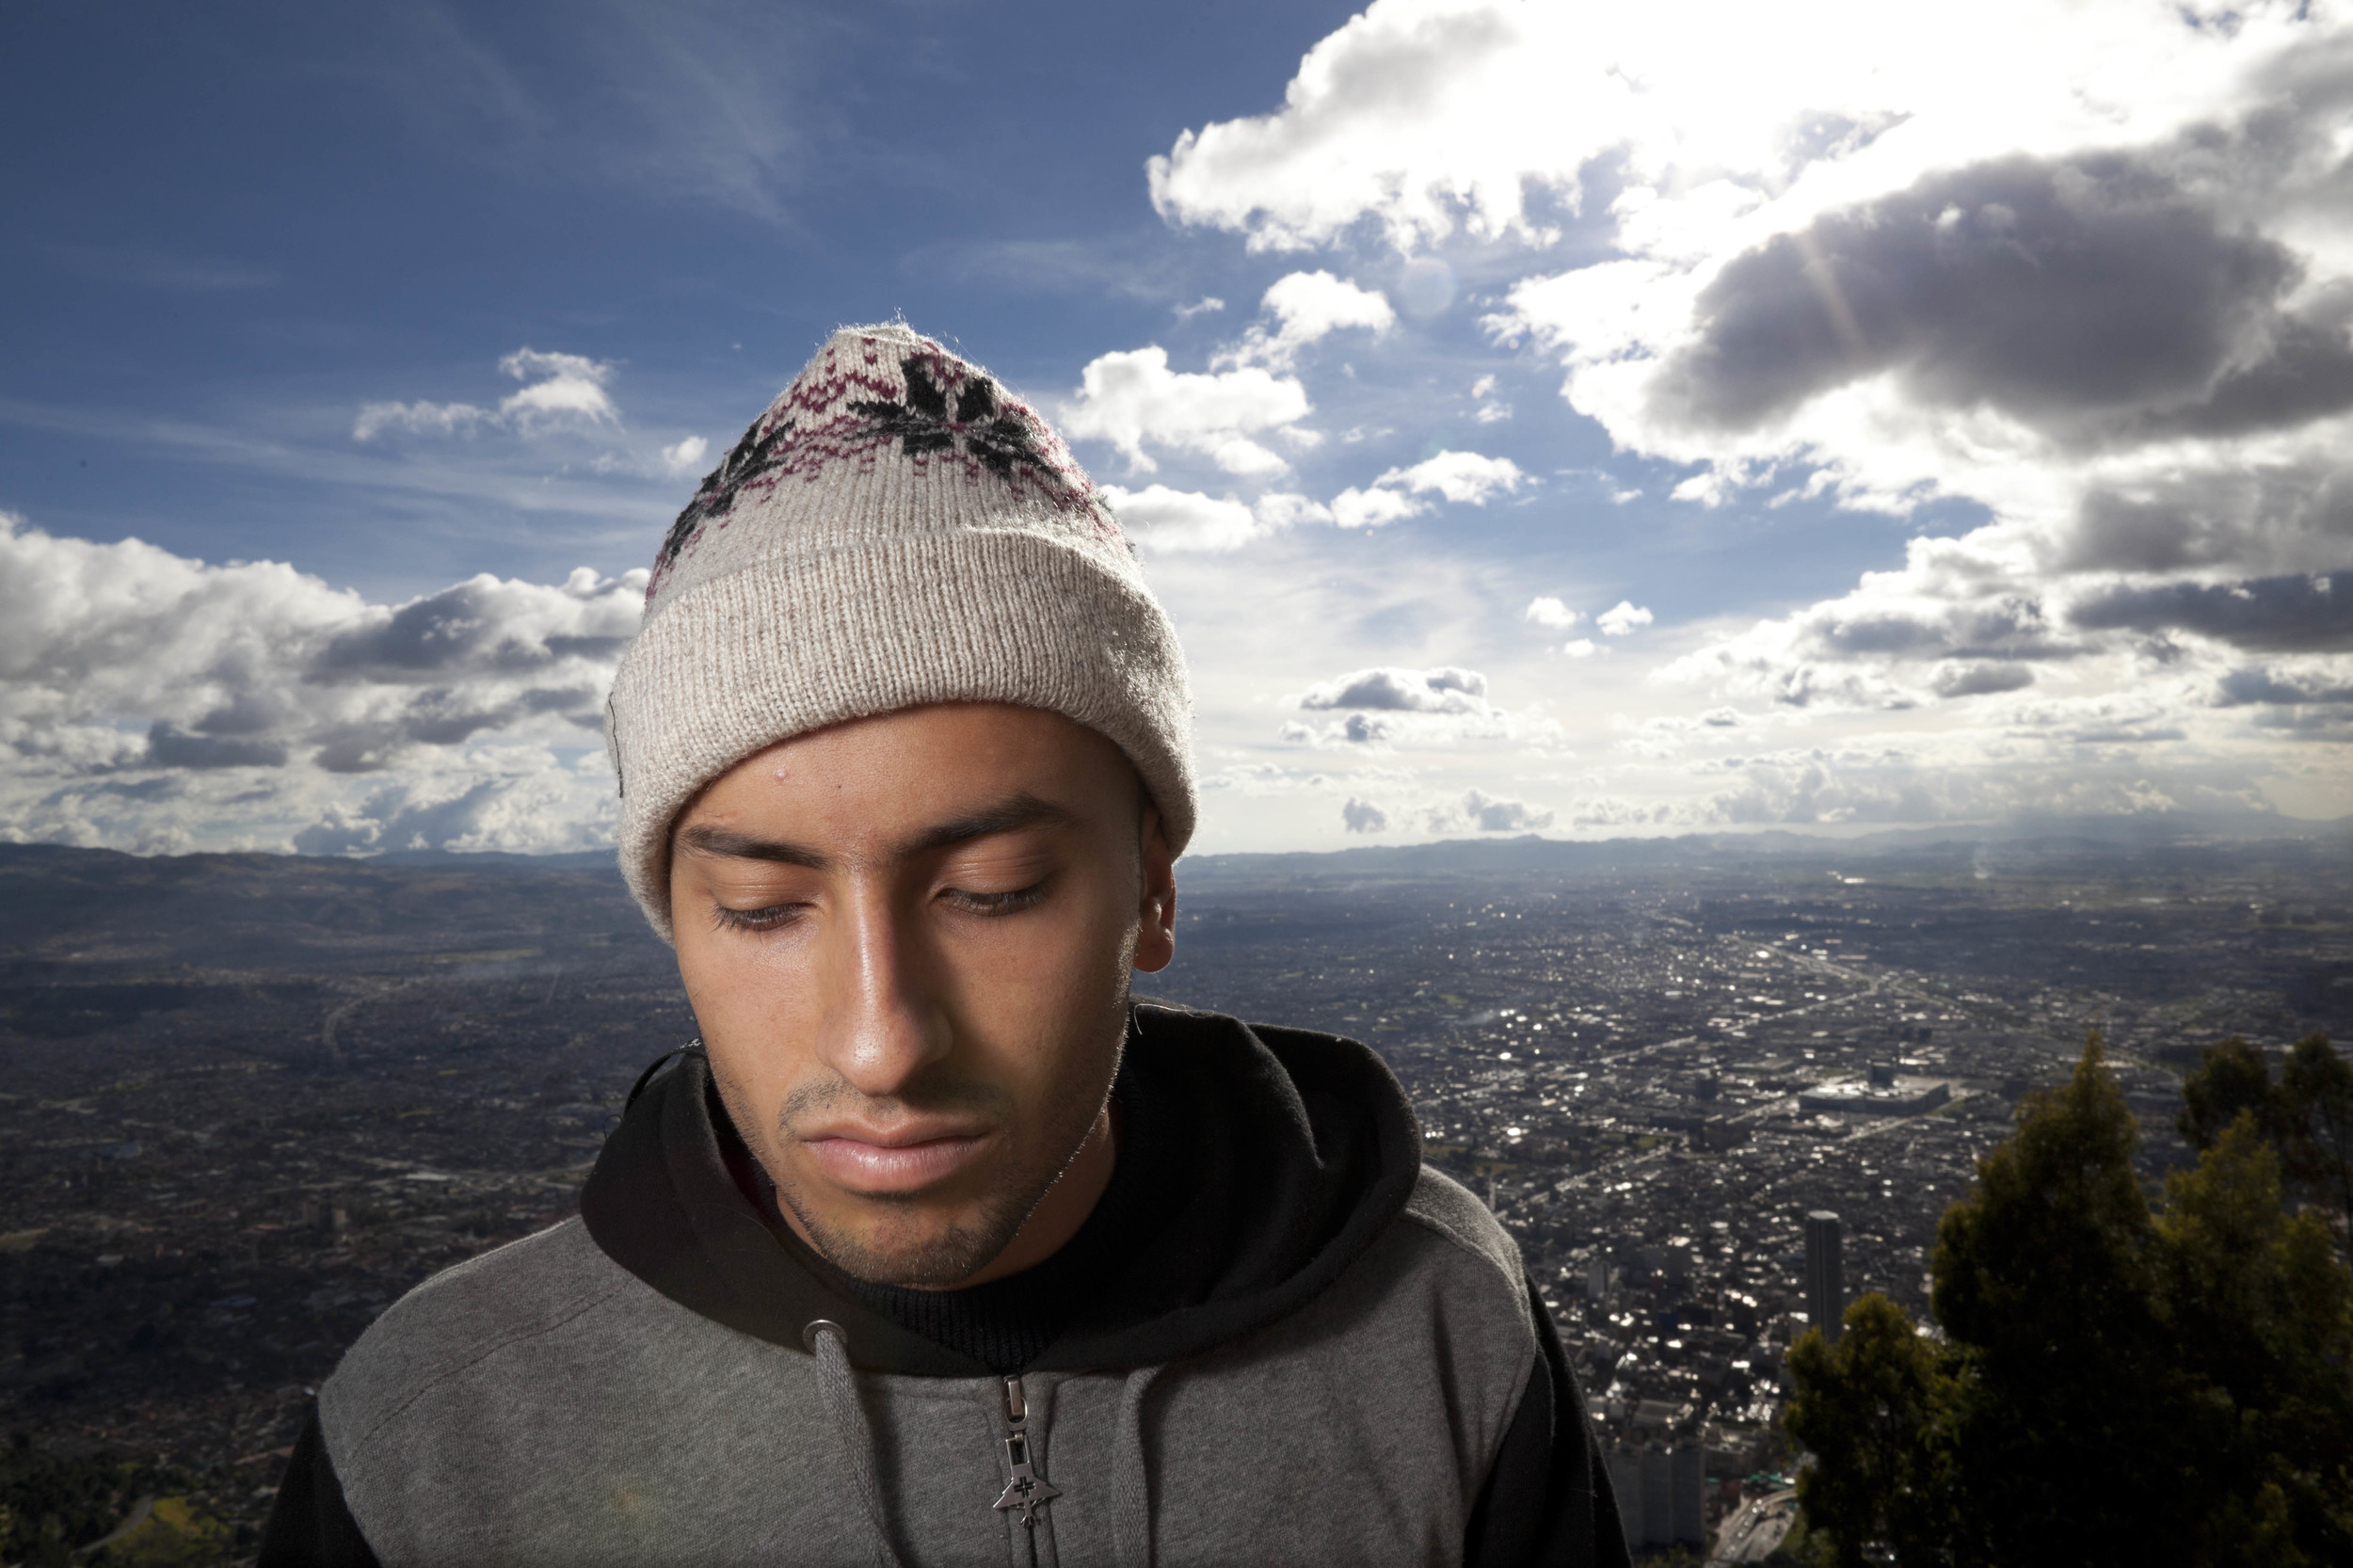 Bogotá. 25 July 2012. Felipe with his hometown of Bogotá stretched out behind him.